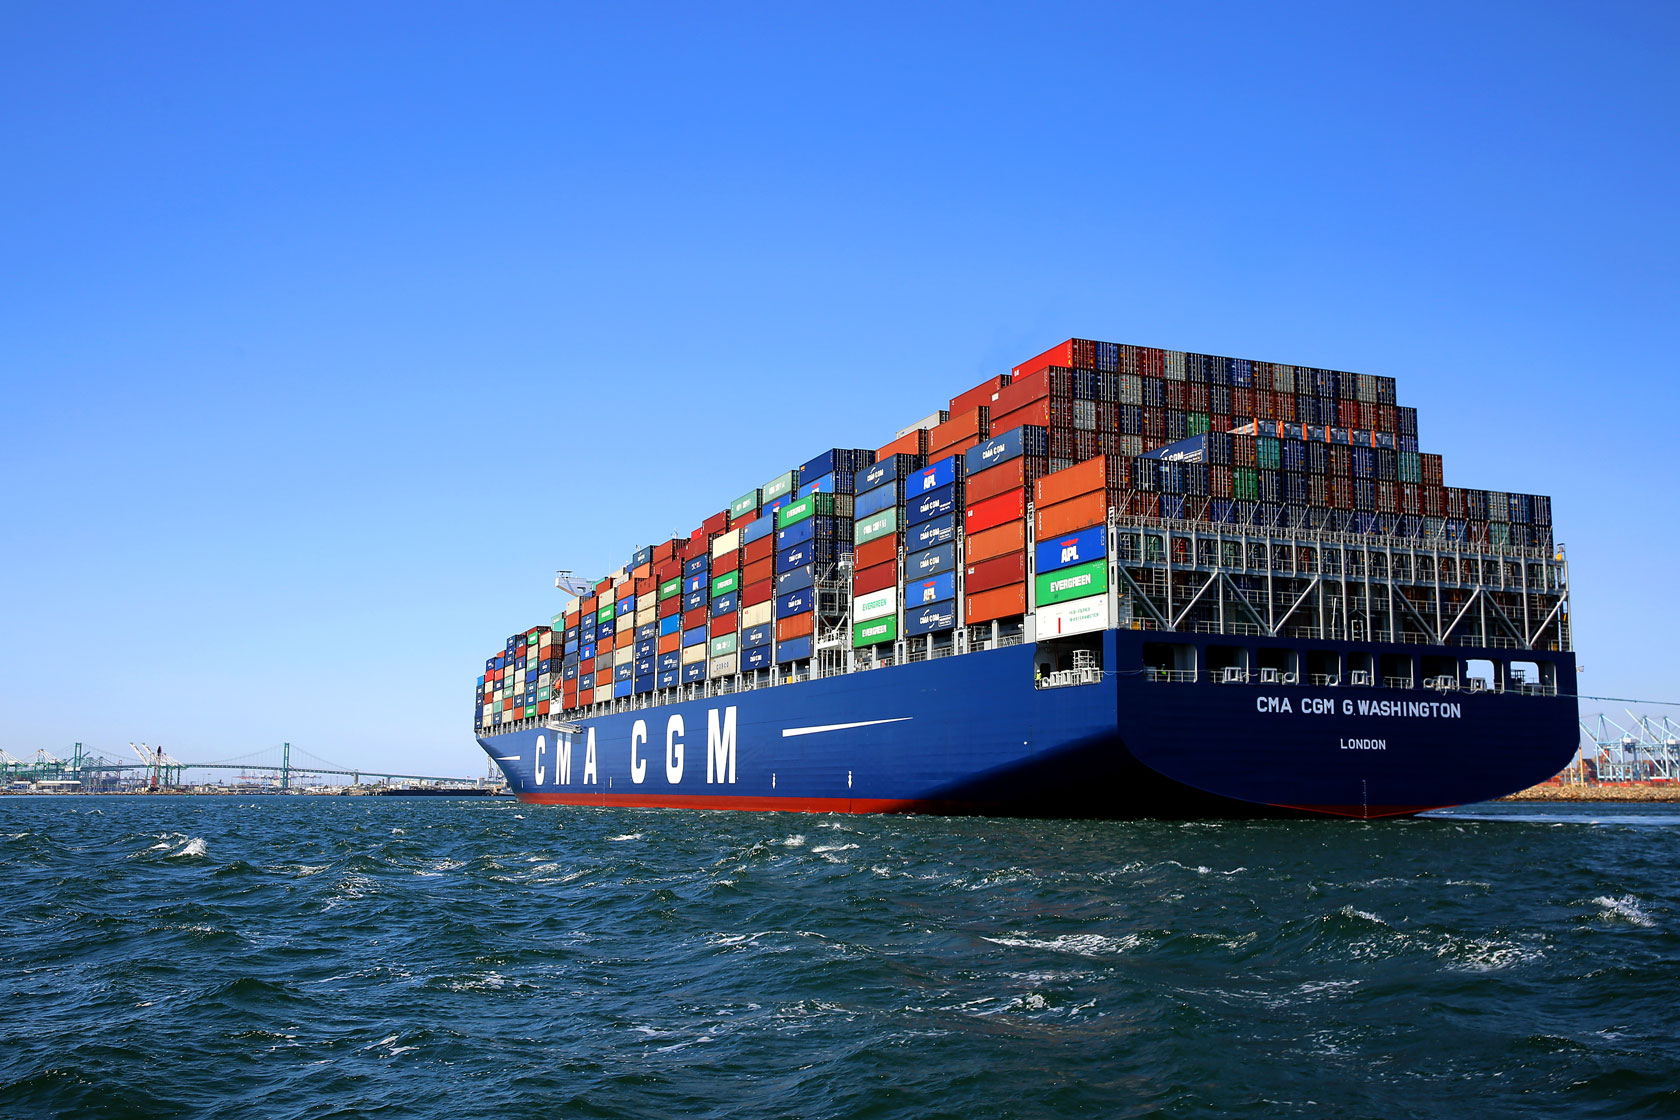 CMA CGM George Washington